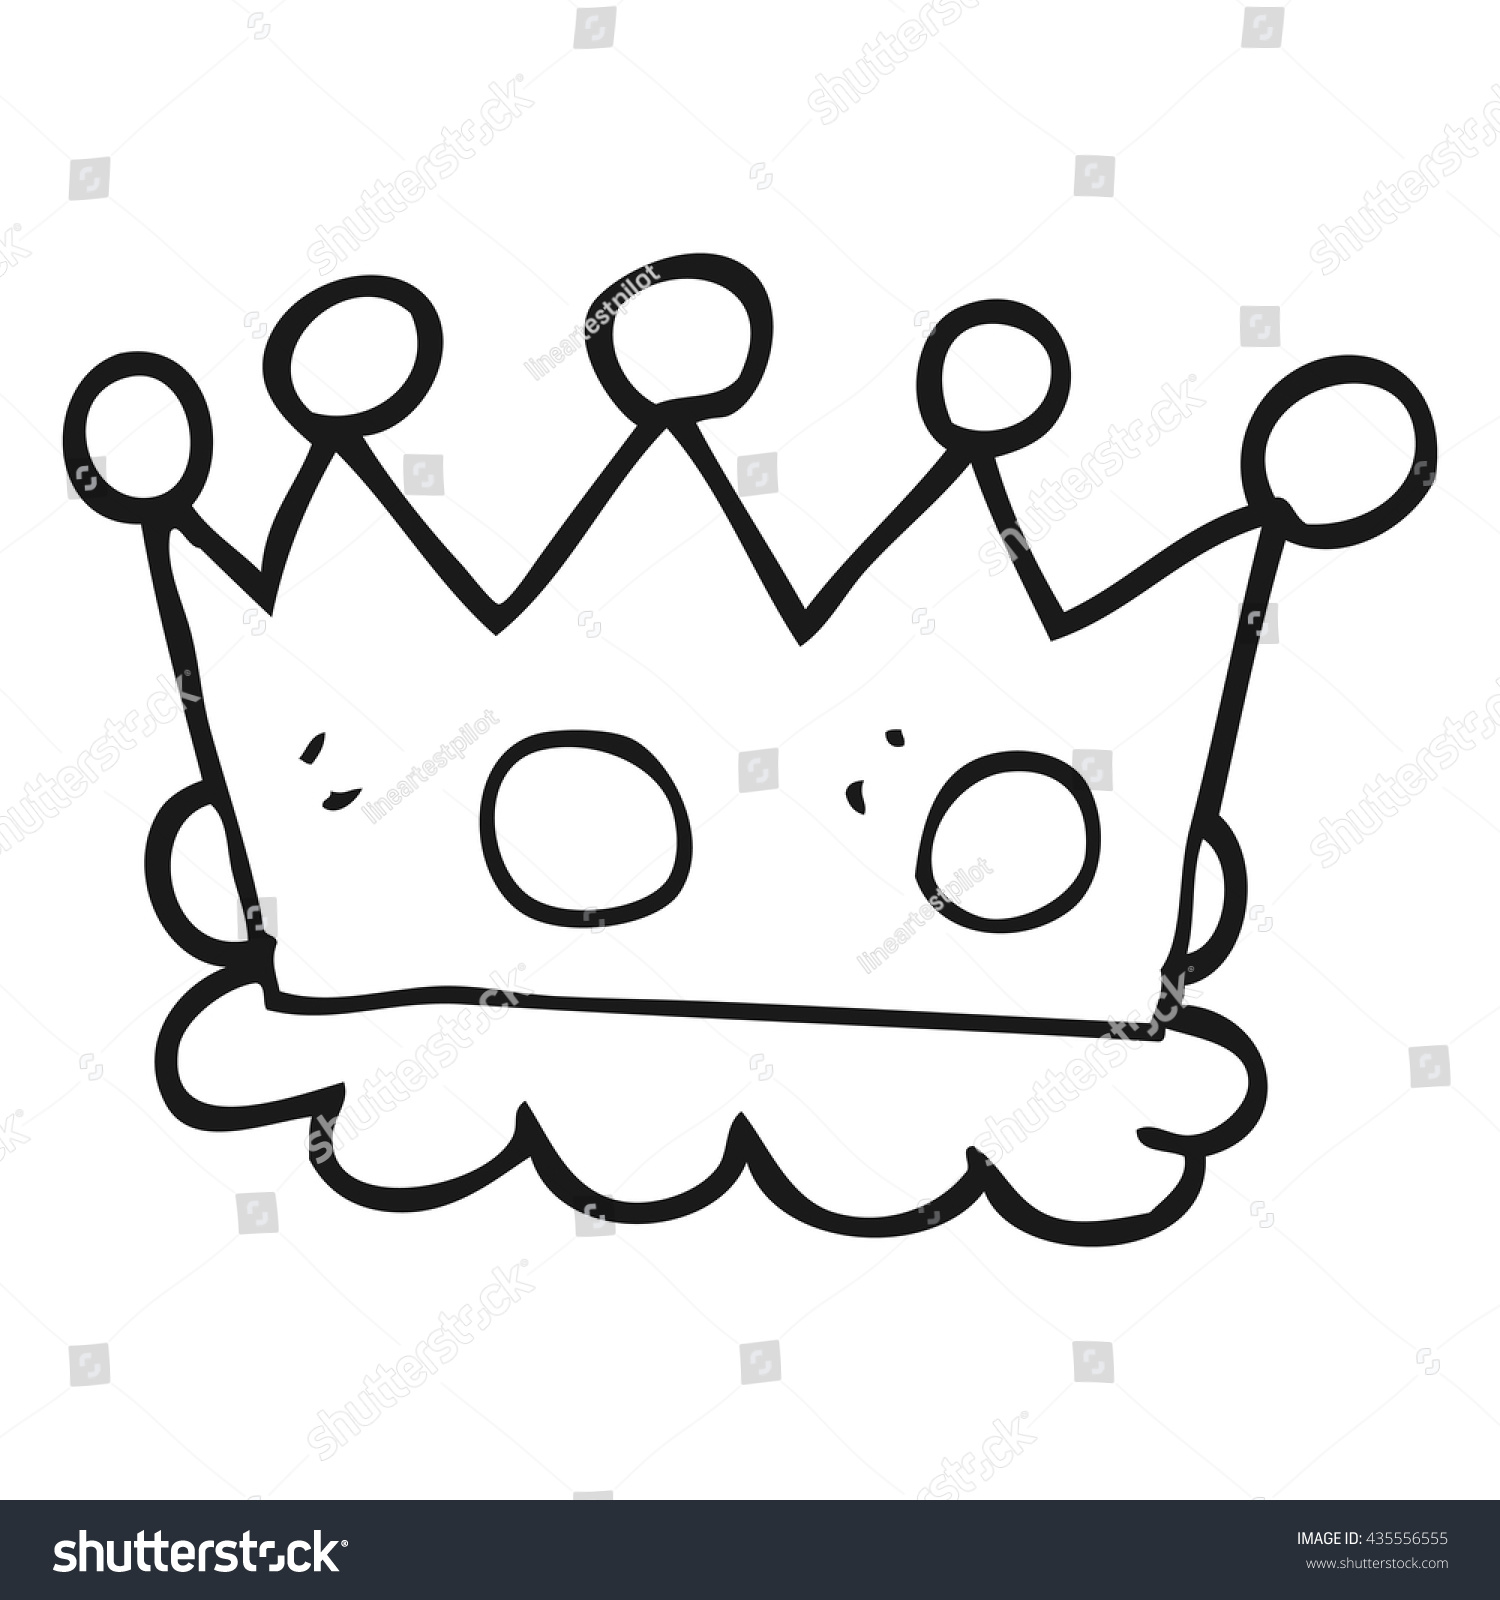 Cartoon Crown Black And White / Drawing crown of queen elizabeth the queen mother , black and white png clipart.